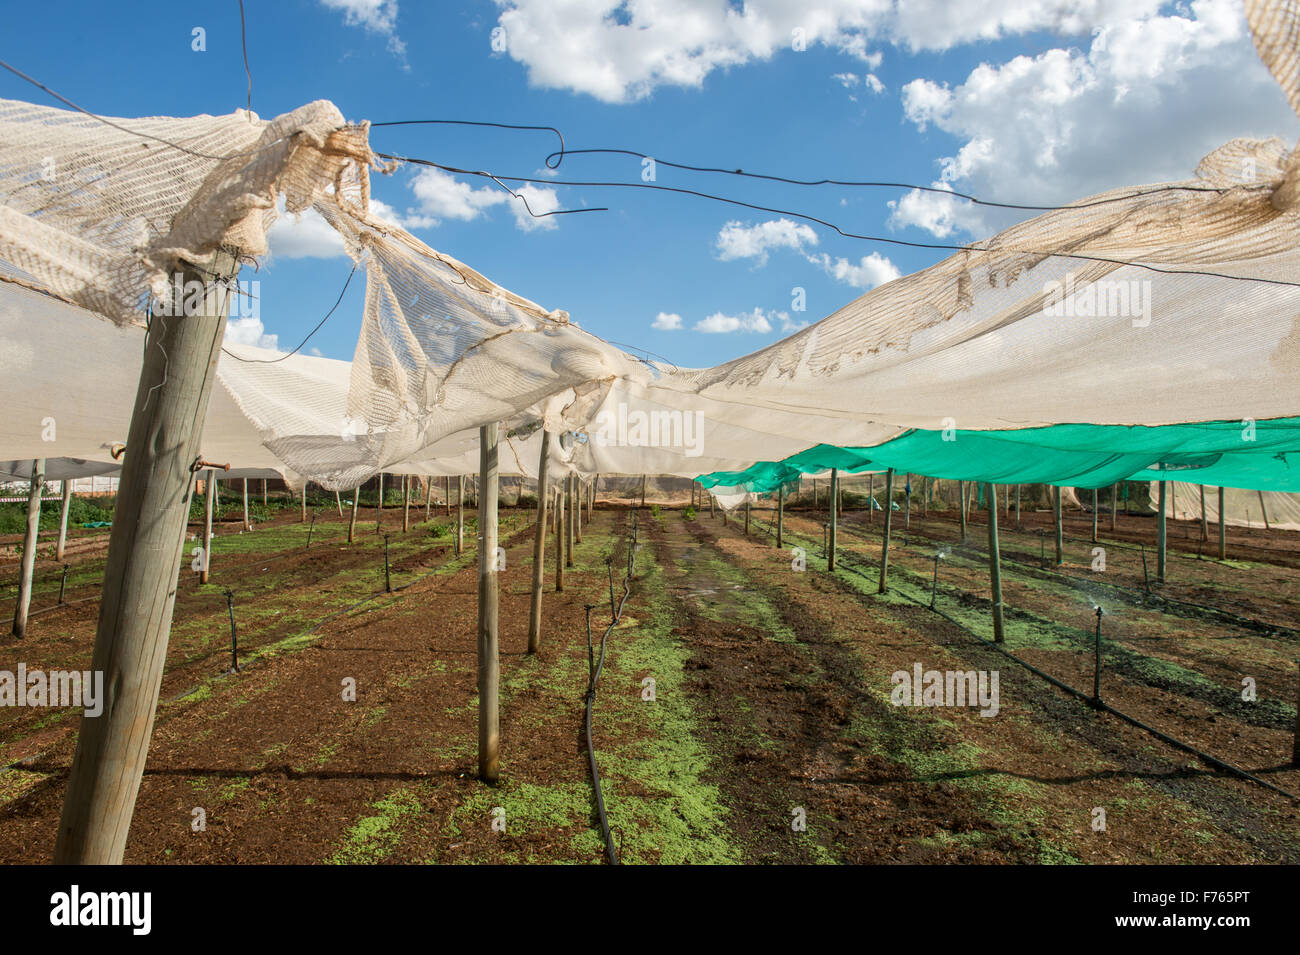 JOHANNESBURG, SOUTH AFRICA- Torn fabric protecting crop on farm, - Stock Image